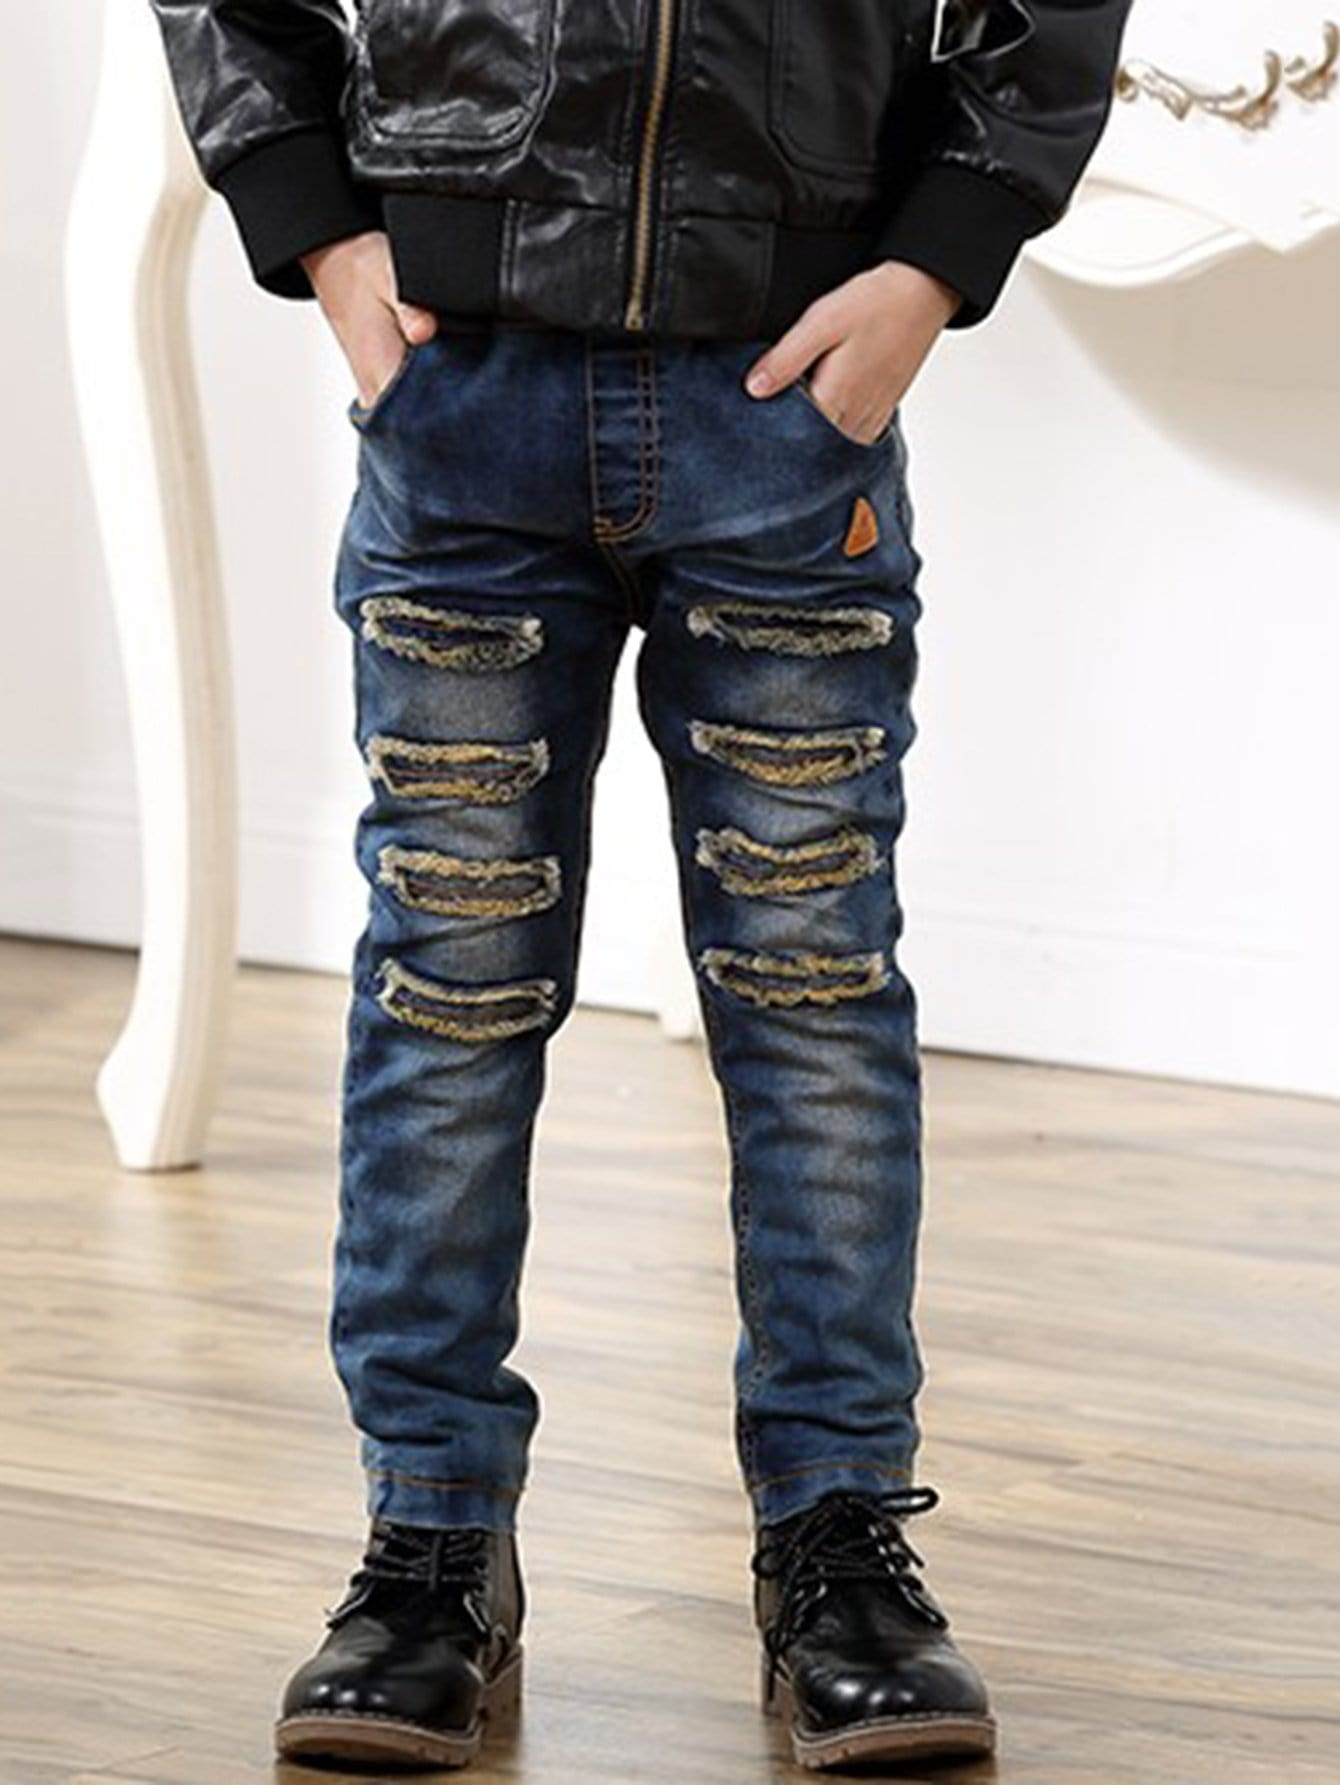 Kids Patched Decoration Destroyed Jeans patched embroidered jeans